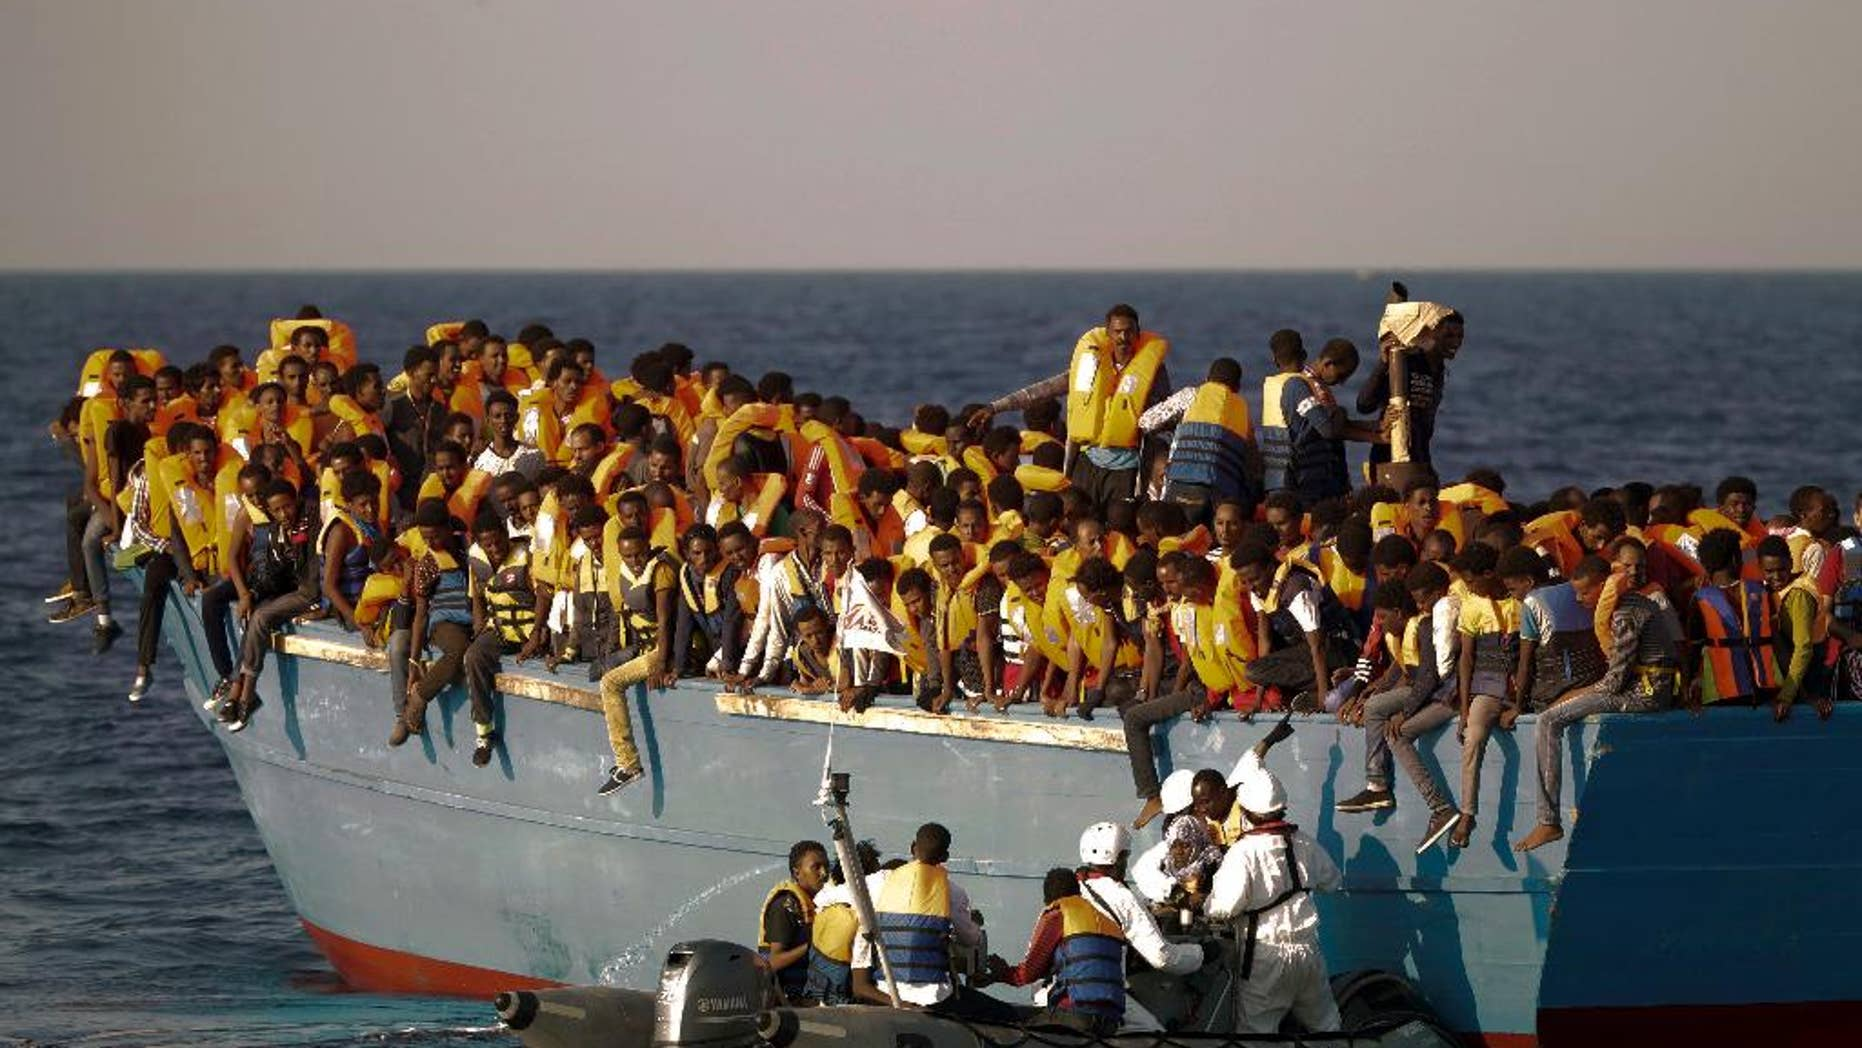 """FILE - In this Monday, Aug. 29, 2016 file photo, migrants crowd onto a wooden boat as they wait to be rescued by members of an ONG at the Mediterranean sea, about 13 miles north of Sabratha, Libya. When the camera's viewfinder is in """"night vision"""" mode, a hidden world appears that is invisible to the naked eye in the darkness of night. Bathed in green, the view is even more dreamlike _ or nightmarish.  (AP Photo/Emilio Morenatti, File)"""